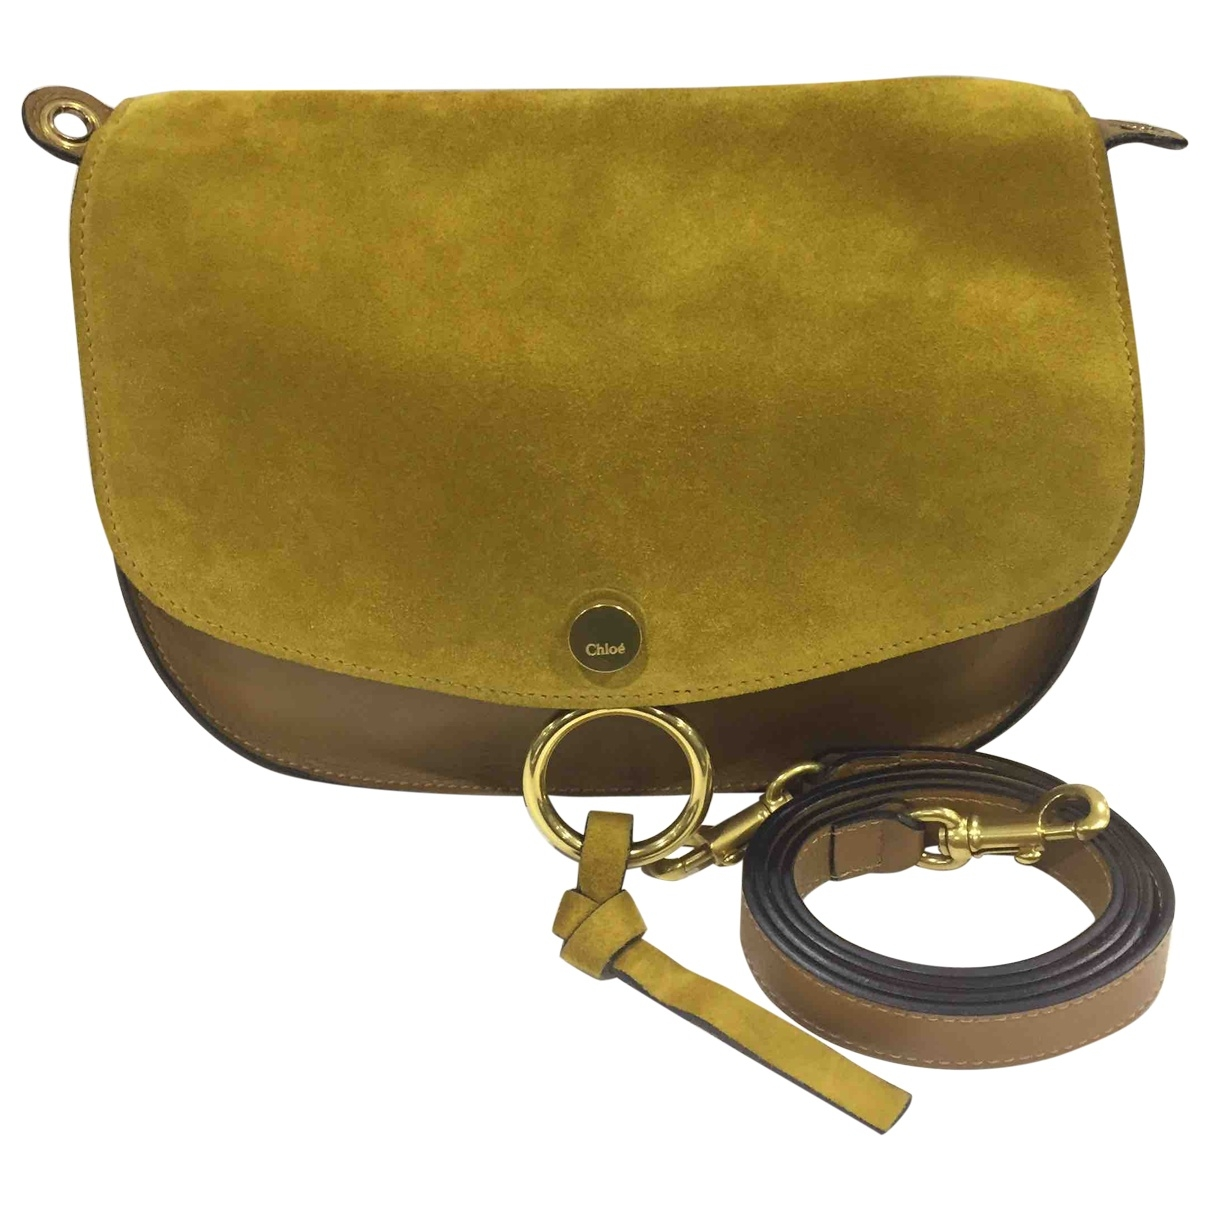 Chloé Kurtis Brown Suede handbag for Women \N